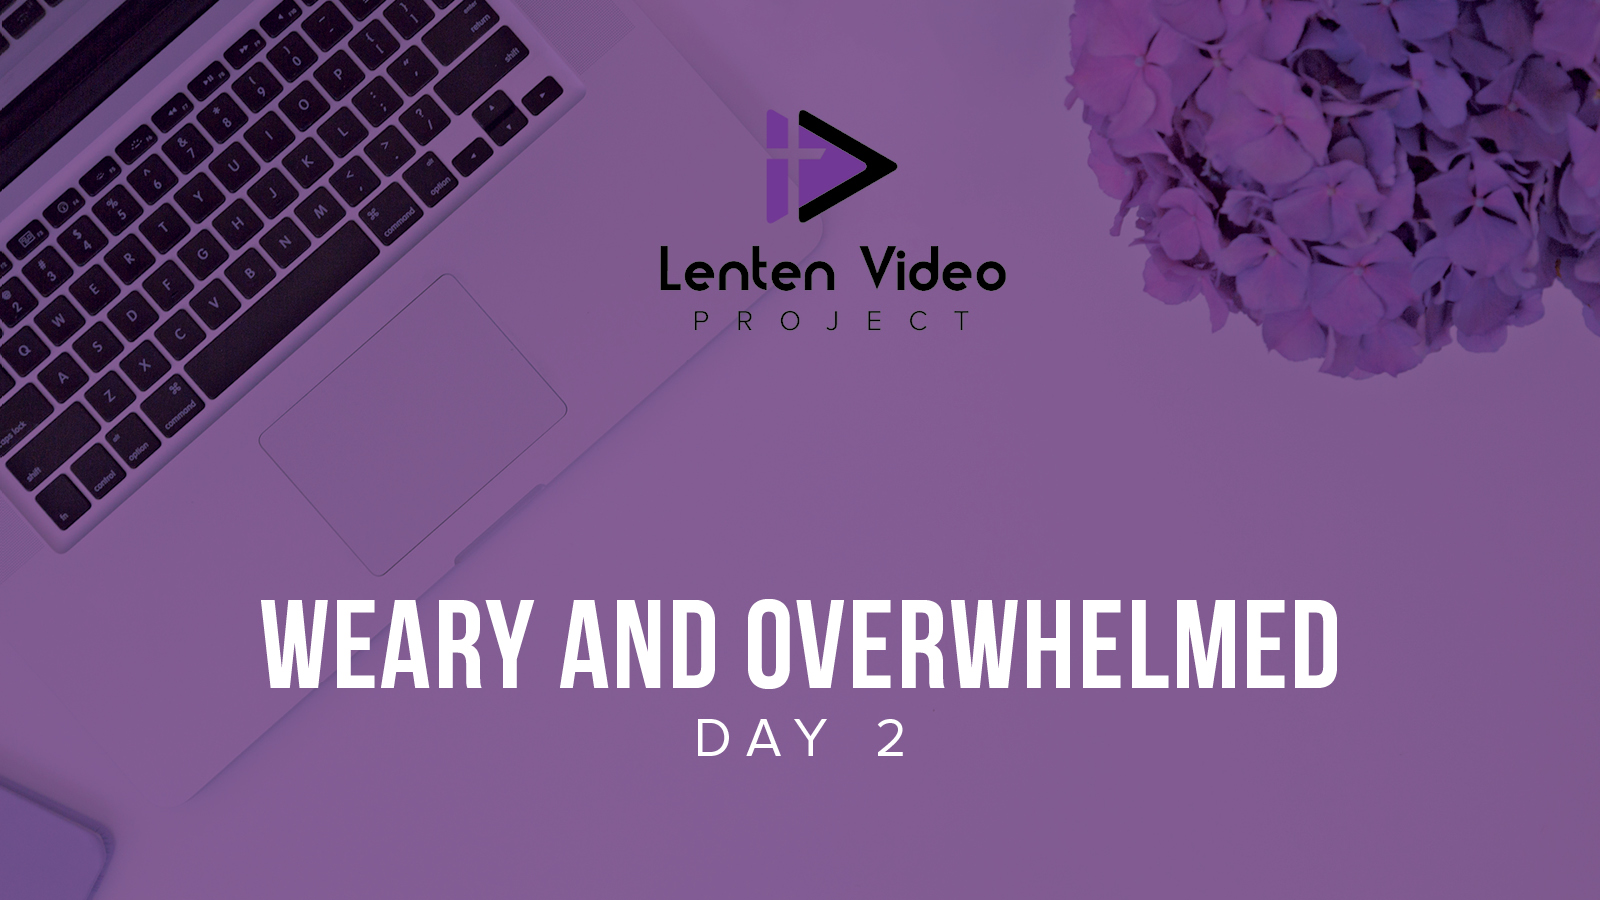 Weary and Overwhelmed